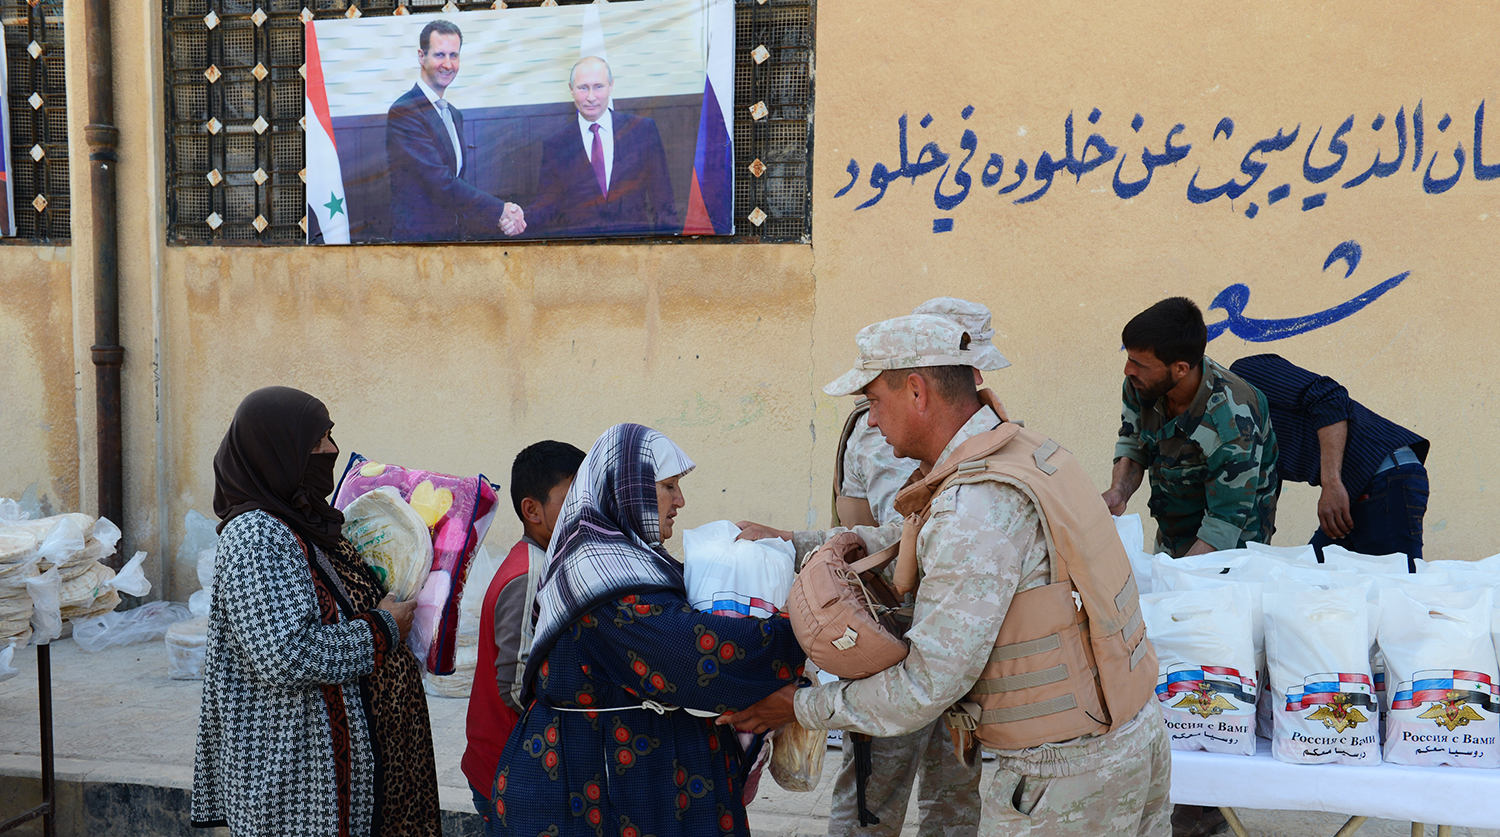 Russian military brought humanitarian aid to a Syrian village devastated by militants